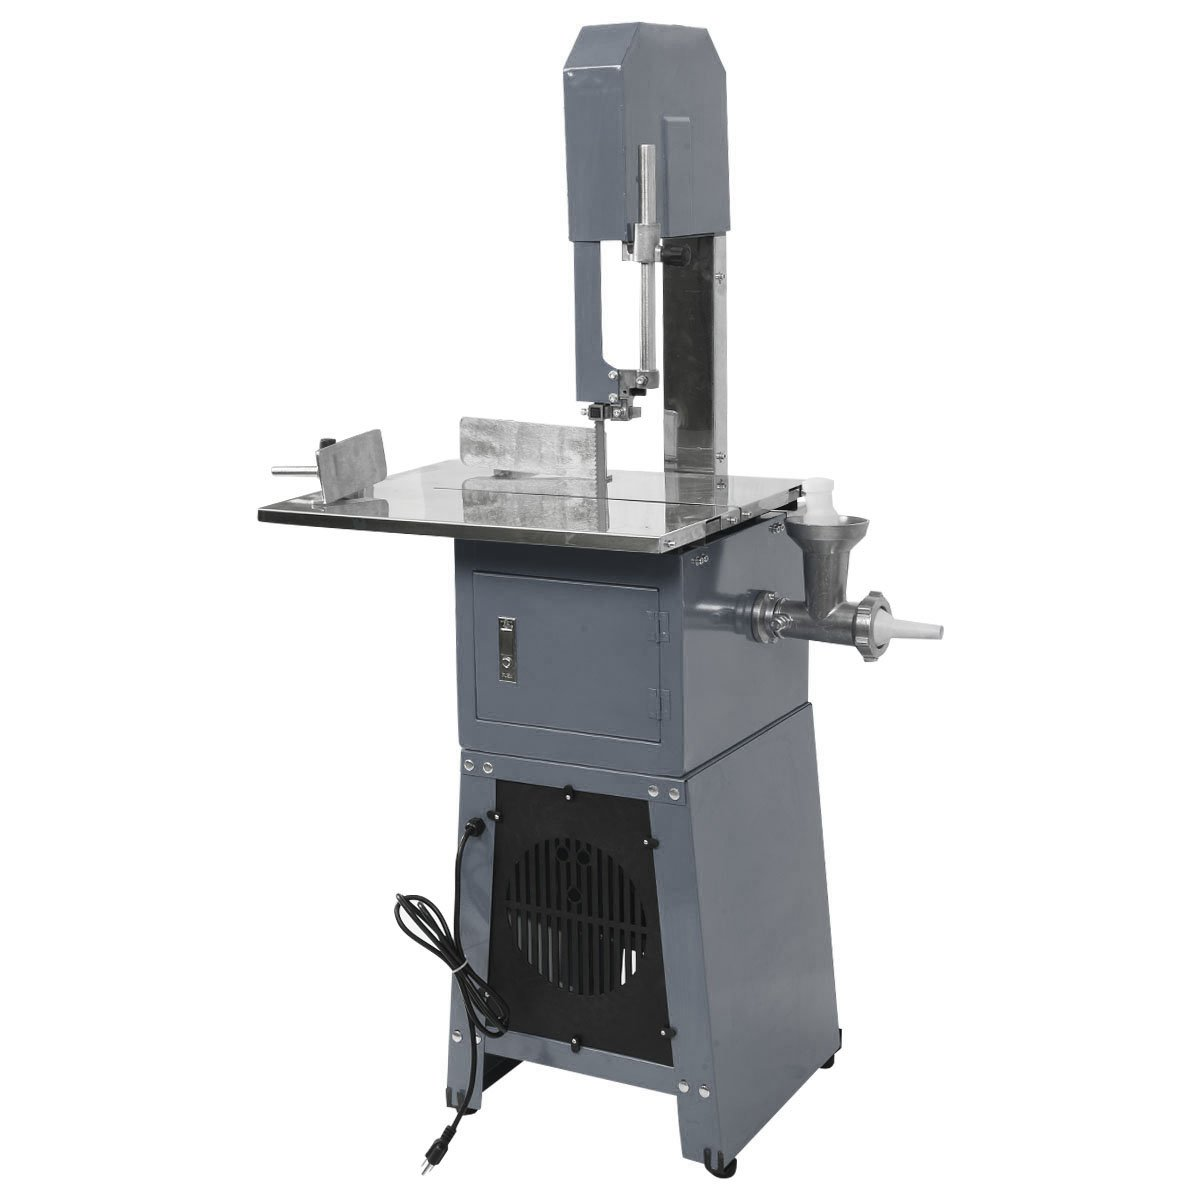 Tangkula Electric 550W Proffessional Stand Up Butcher Meat Band Saw & Grinder Processor Sausage Gray